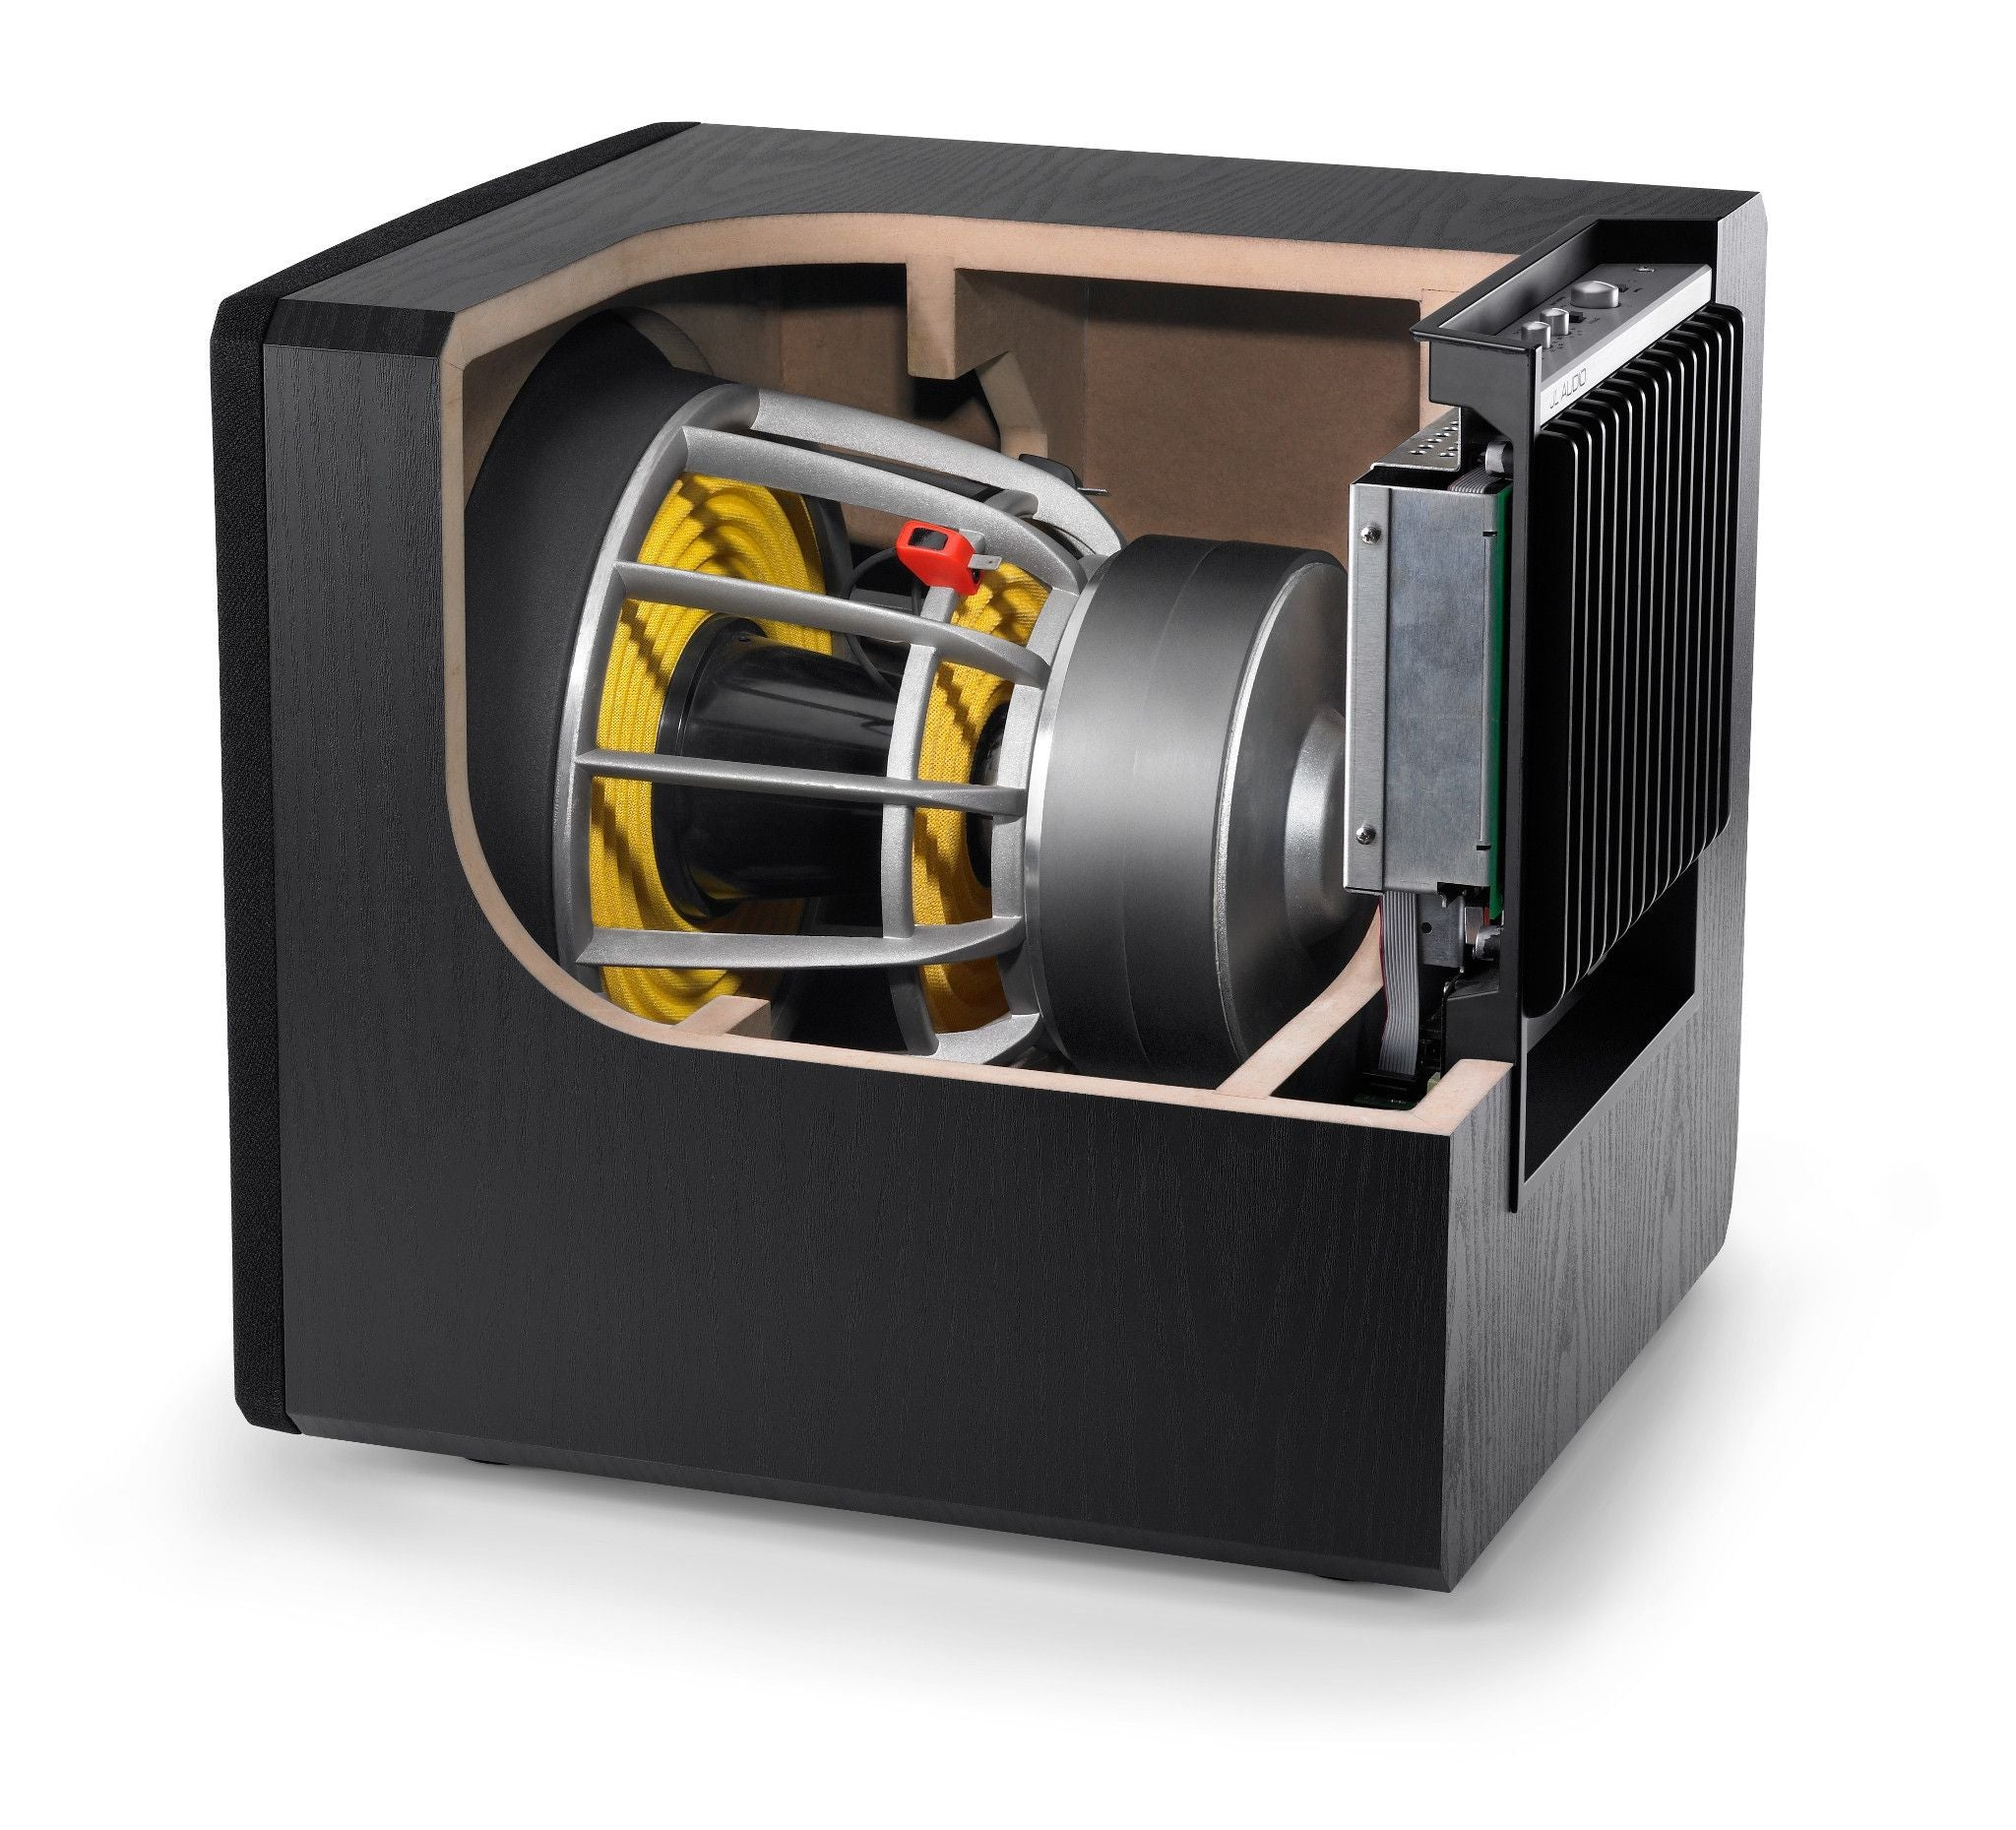 Cutaway of e112 Subwoofer Showing Subwoofer and Internal Bracing